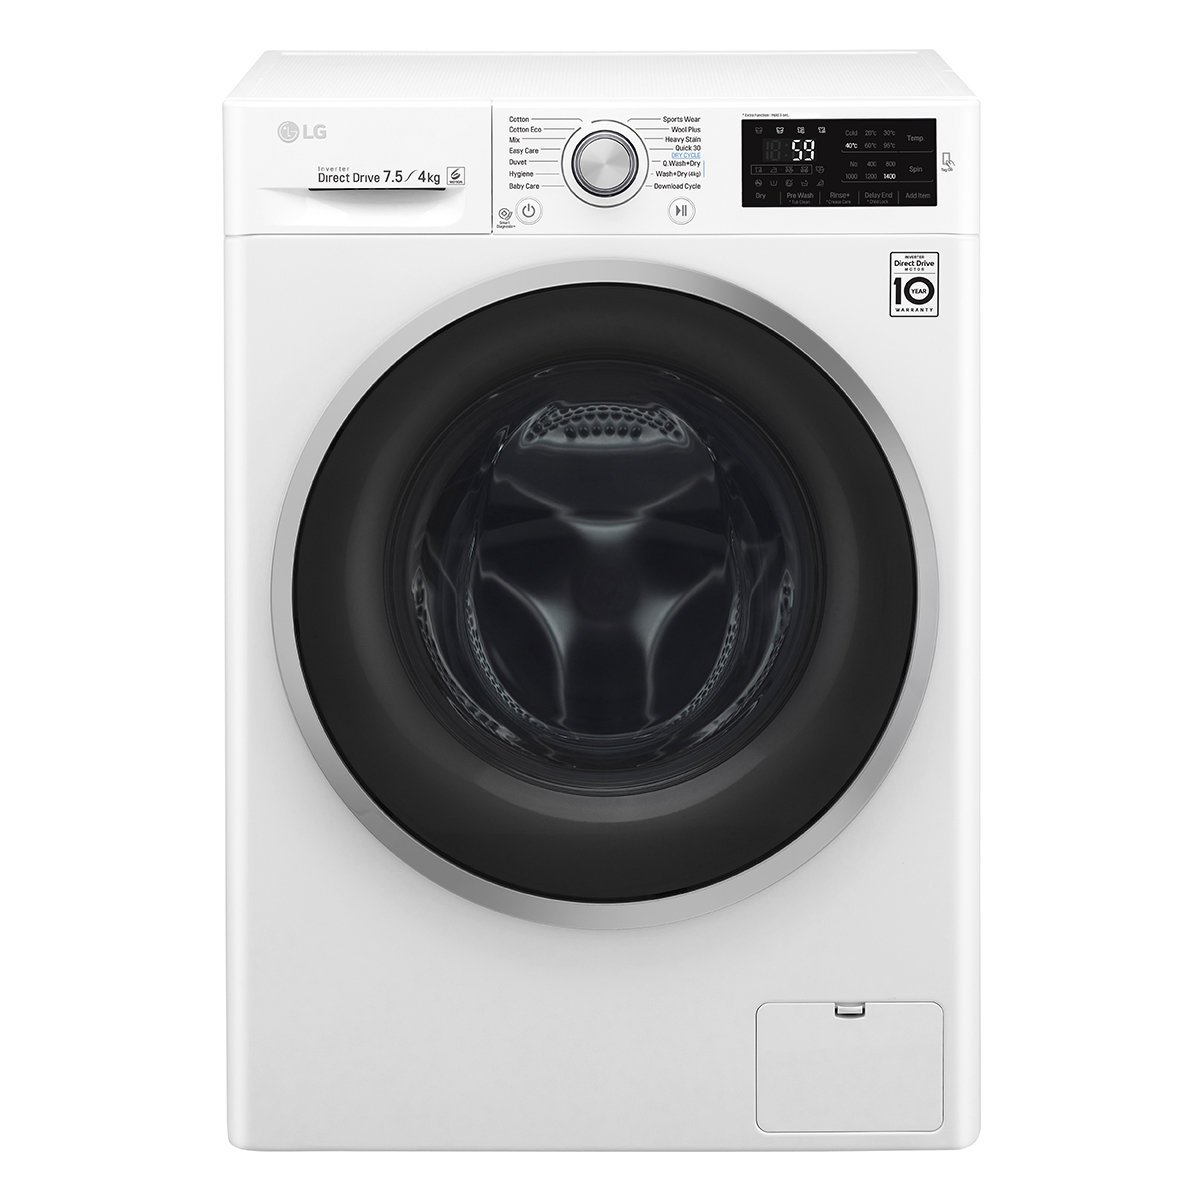 New Washer And Dryer Details About New Lg Wdc1475ncw 7 5kg 4kg Washer Dryer Combo